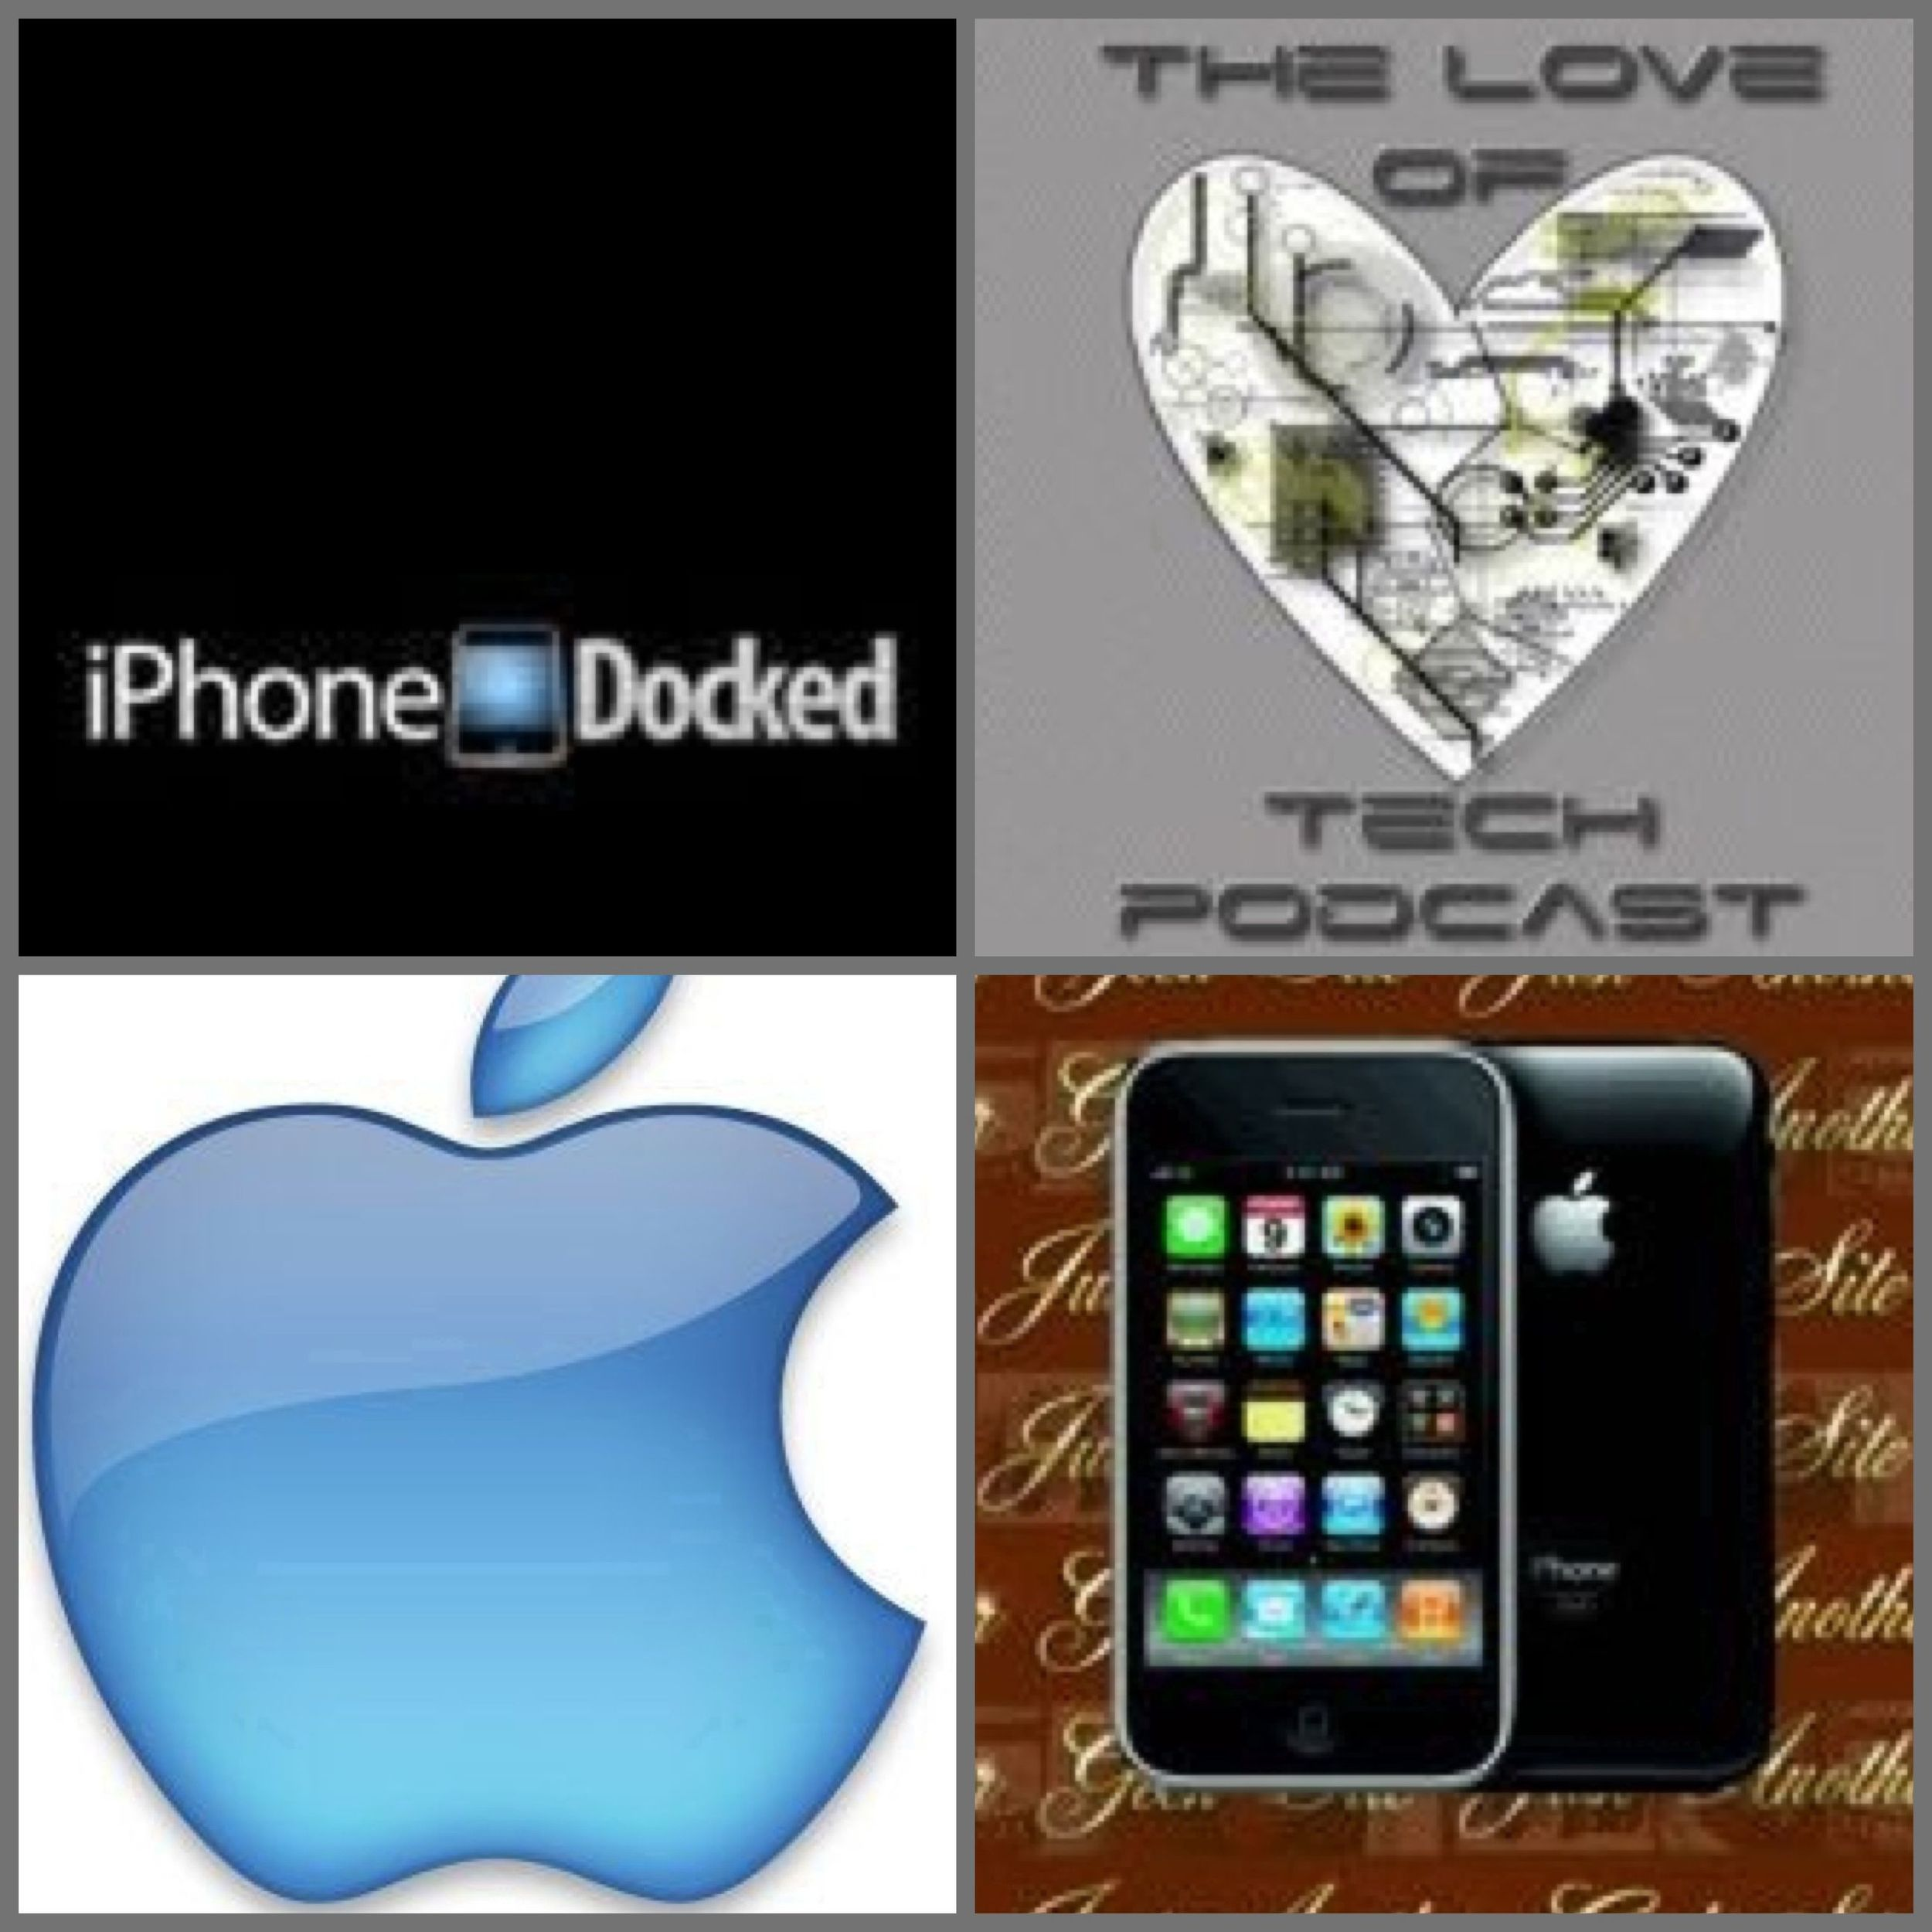 Episode 1 Breakdown:  